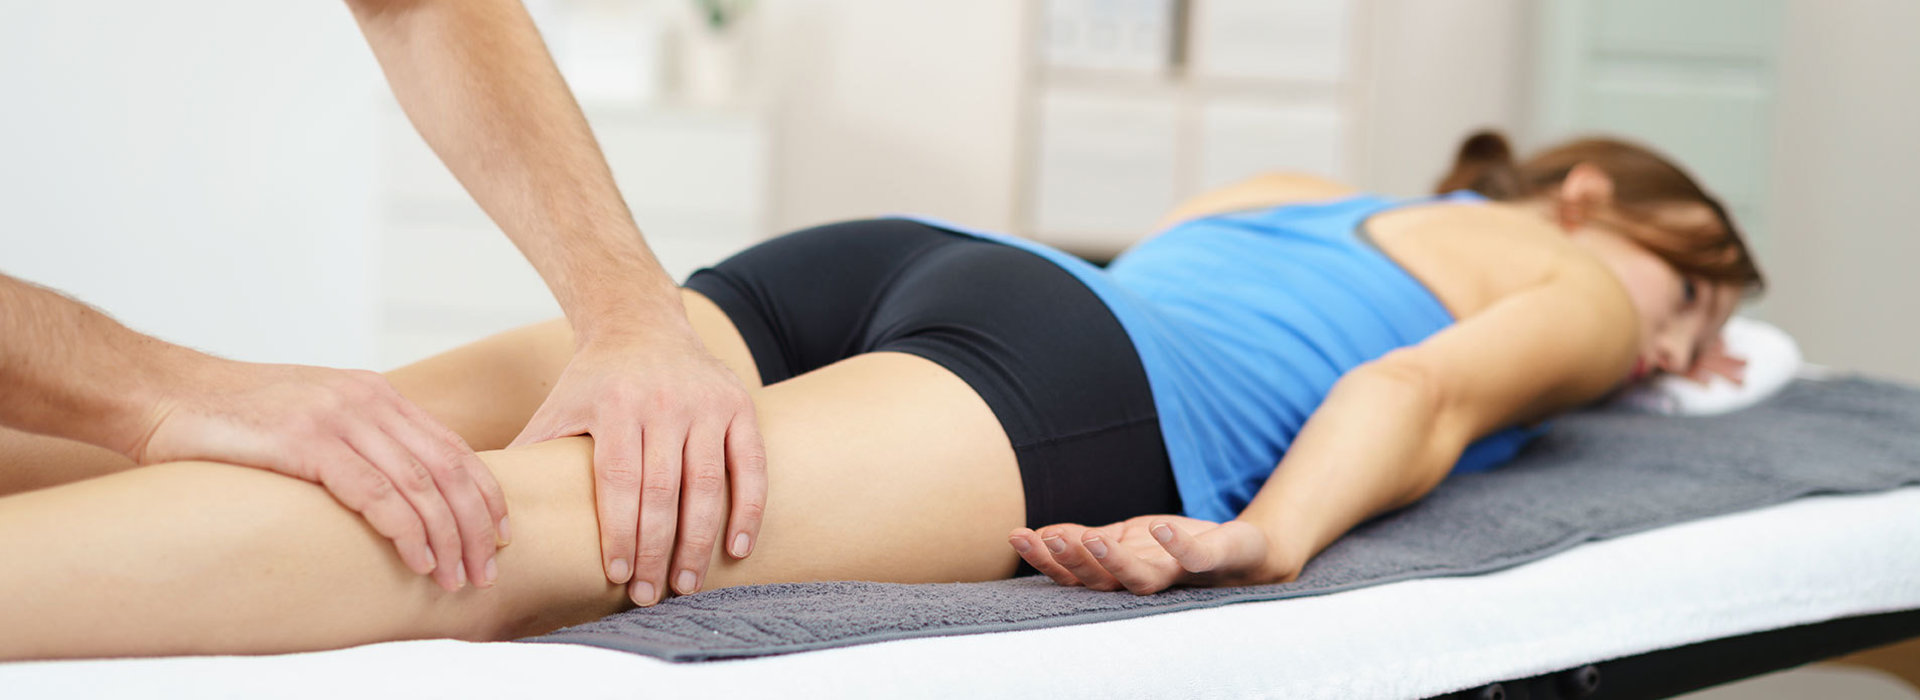 £10 off a 1 hour sports or deep tissue massage treatment